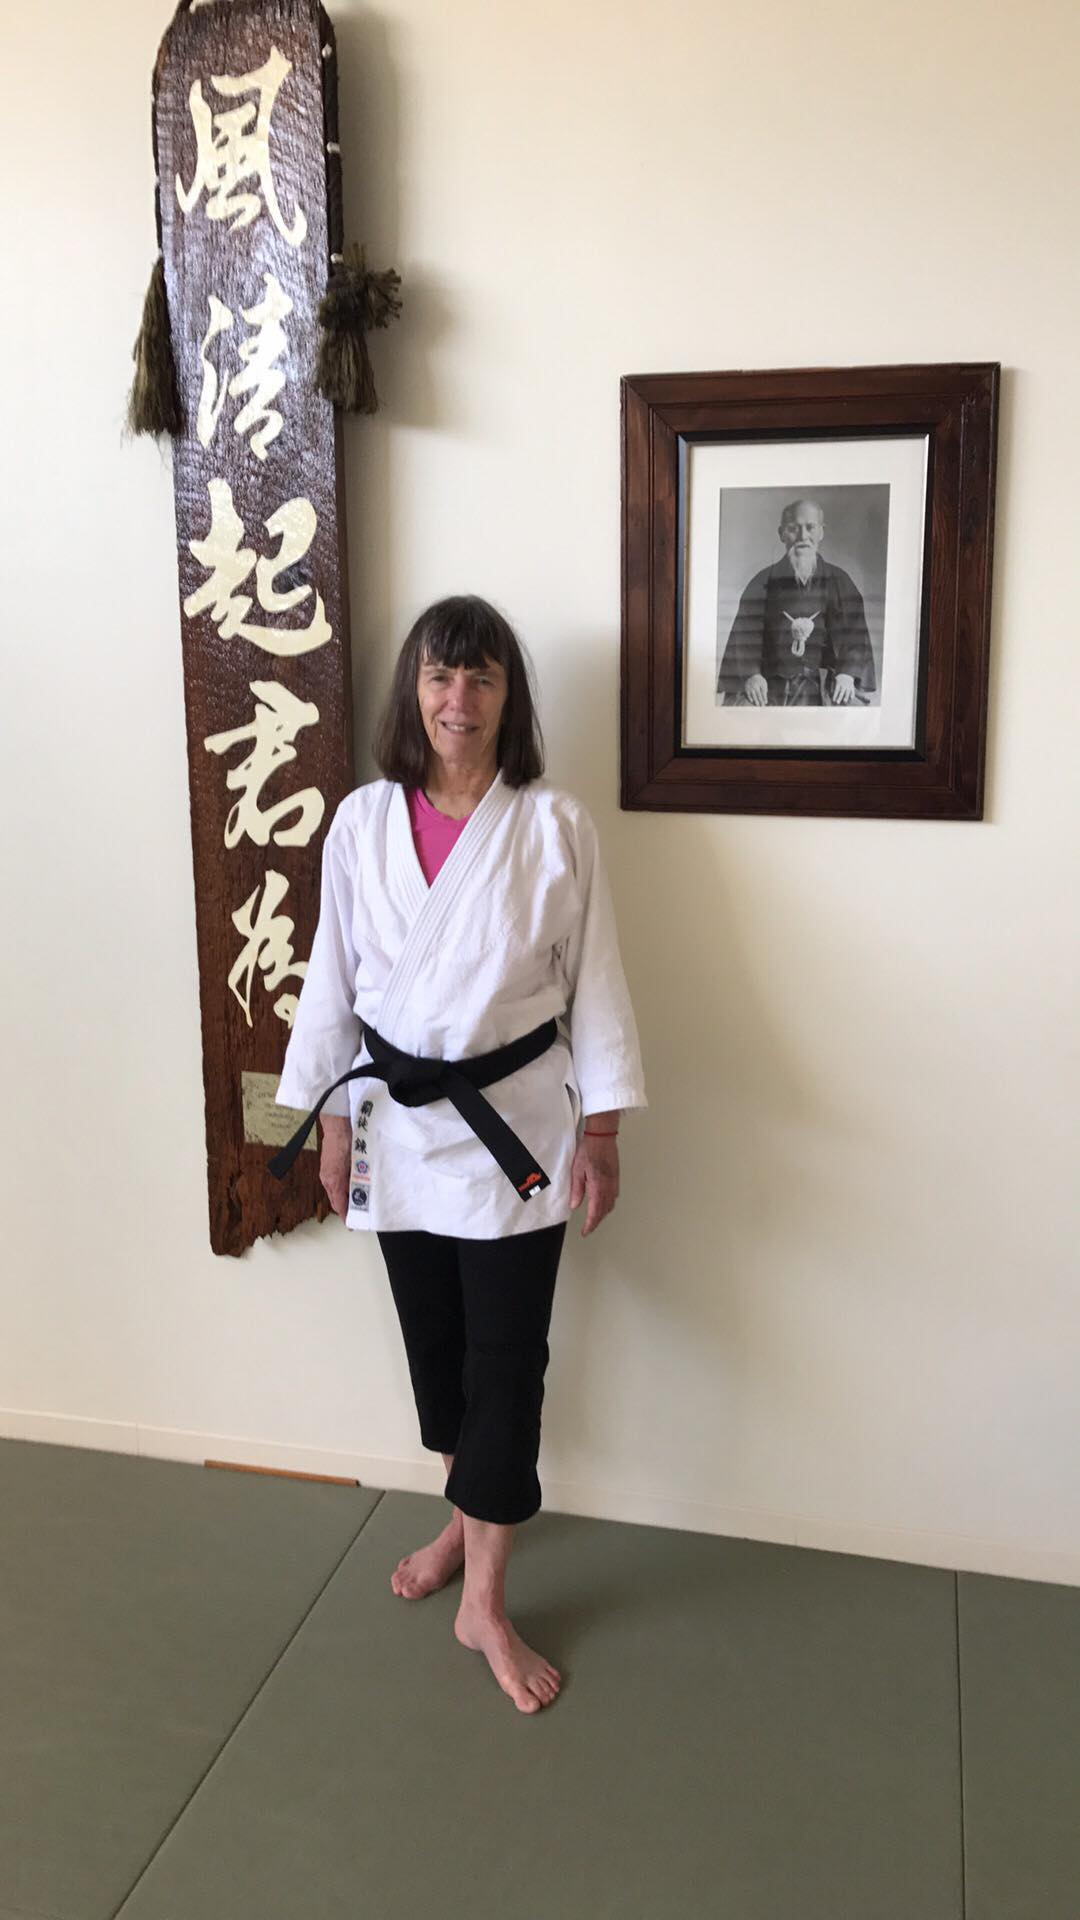 NOLA Aikido April News: Practice Before and After Blackbelt